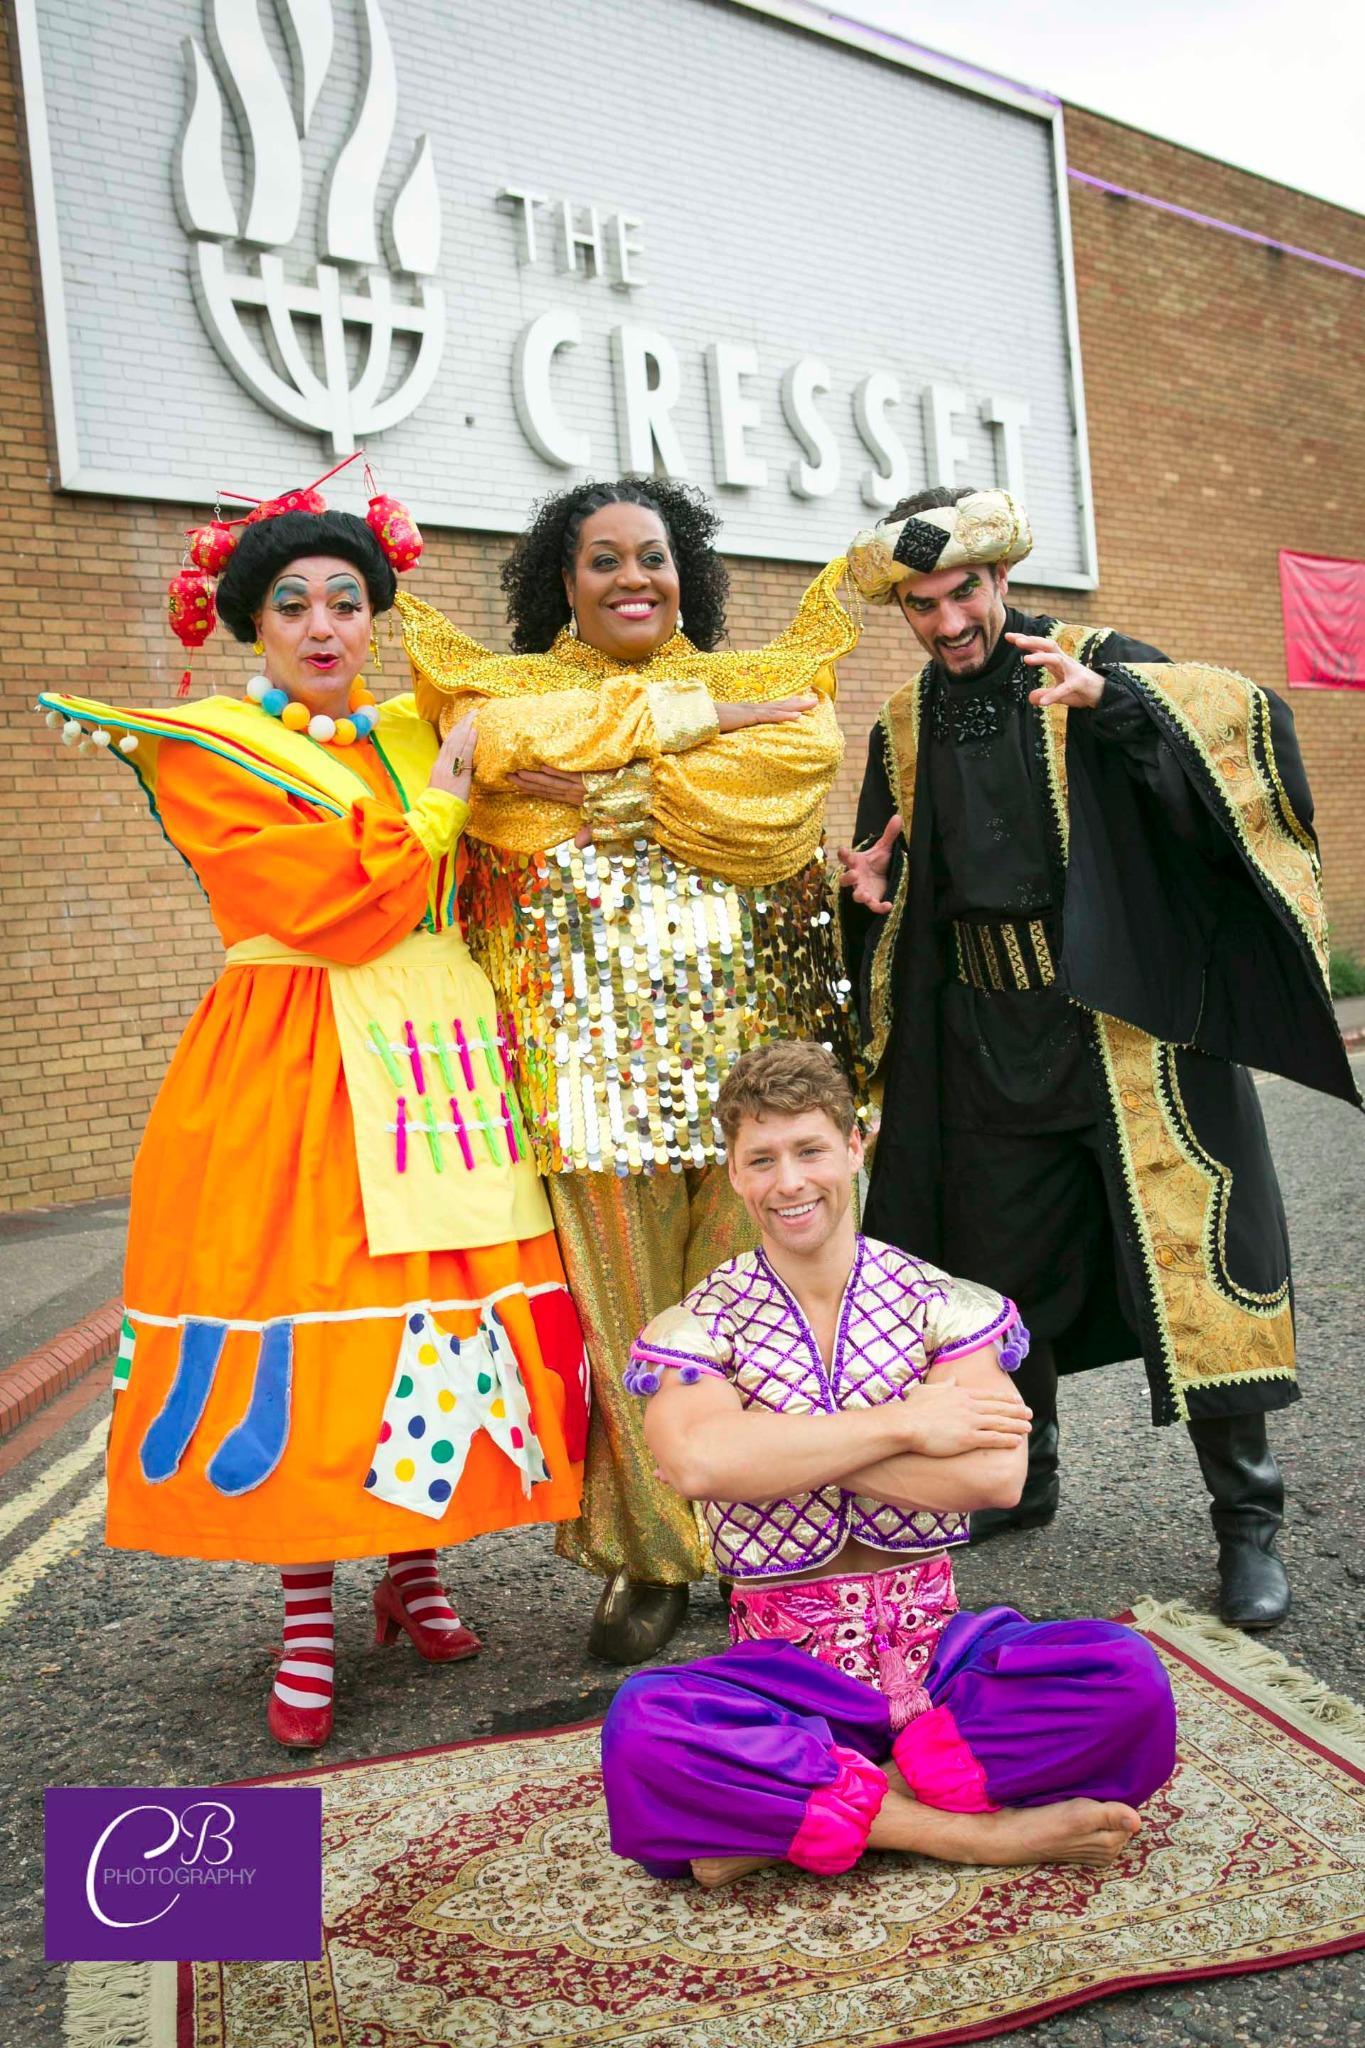 RT @CBrudenell: Great promo shoot at the cresset this morning @AlisonHammond2 @TheCresset http://t.co/k25nG2CDKv